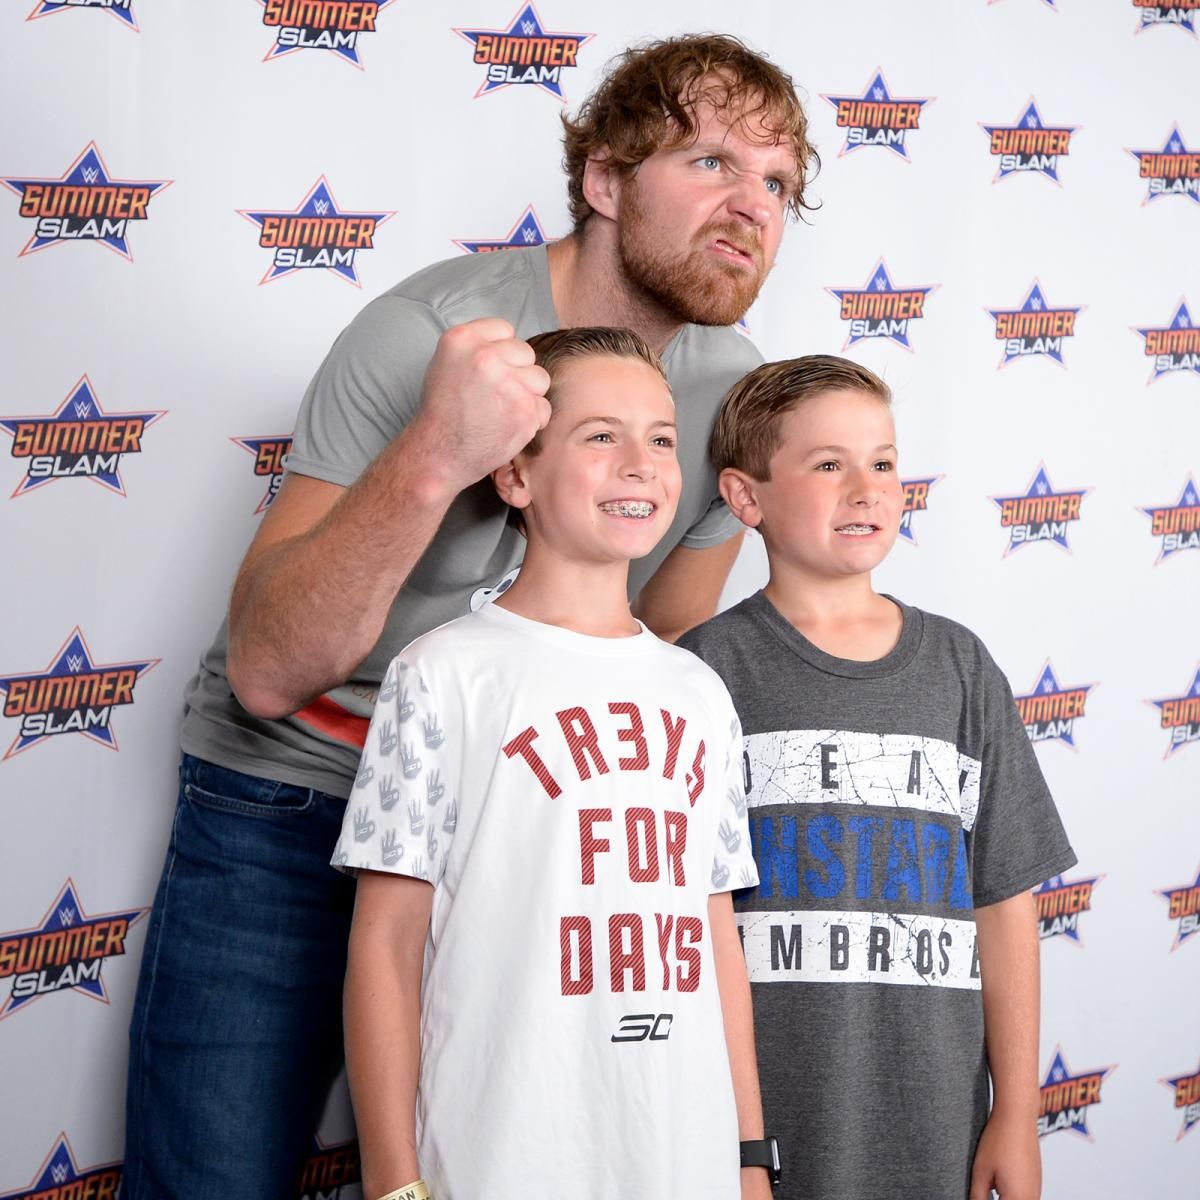 Aj styles and dean ambrose engage the fans in a special summerslam aj styles and dean ambrose engage the fans in a special summerslam meet greet kristyandbryce Choice Image